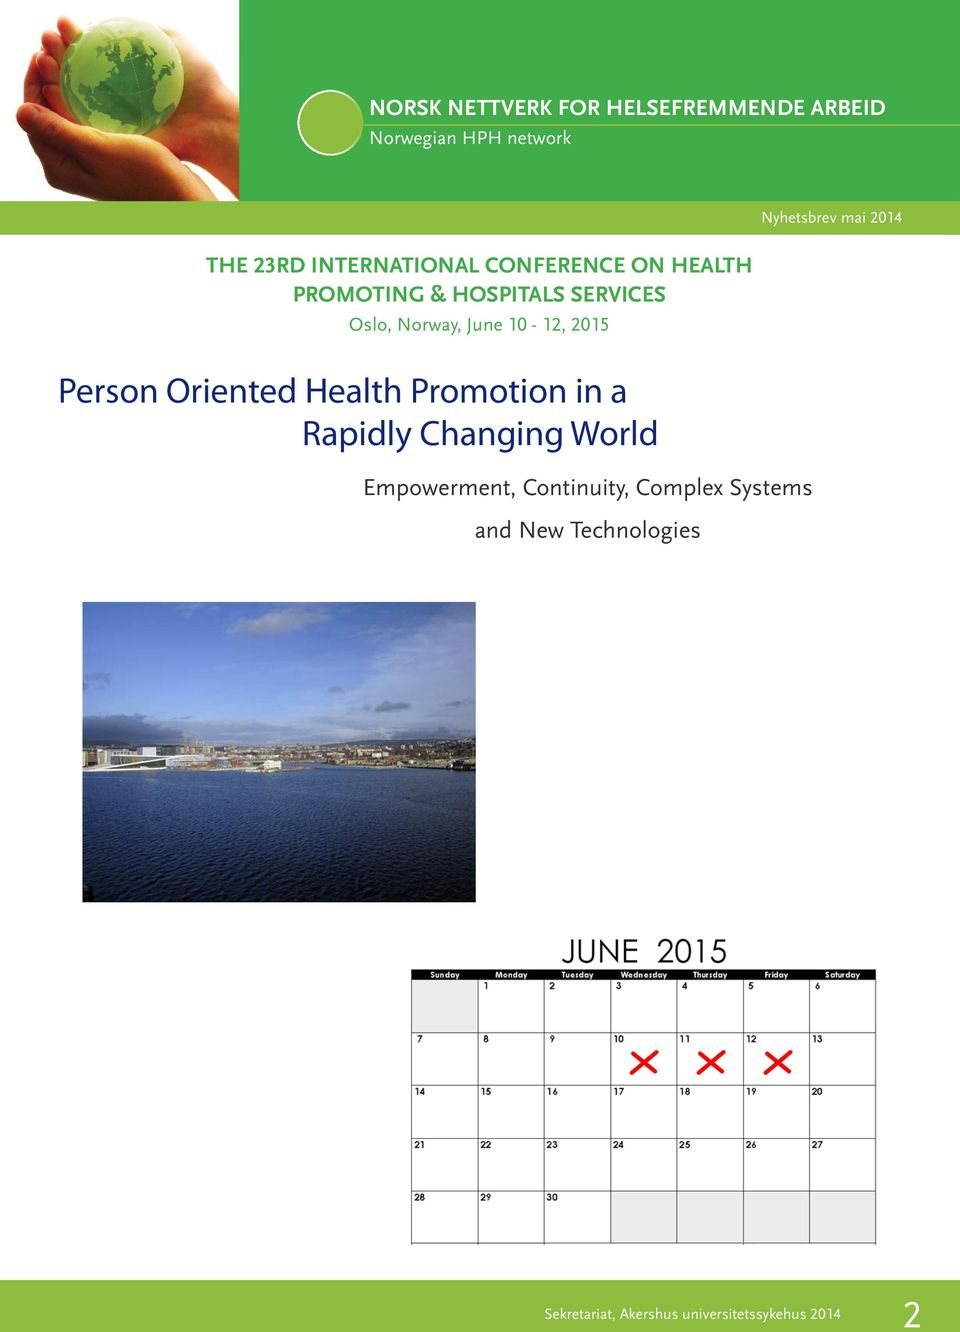 Oriented Health Promotion in a Rapidly Changing World